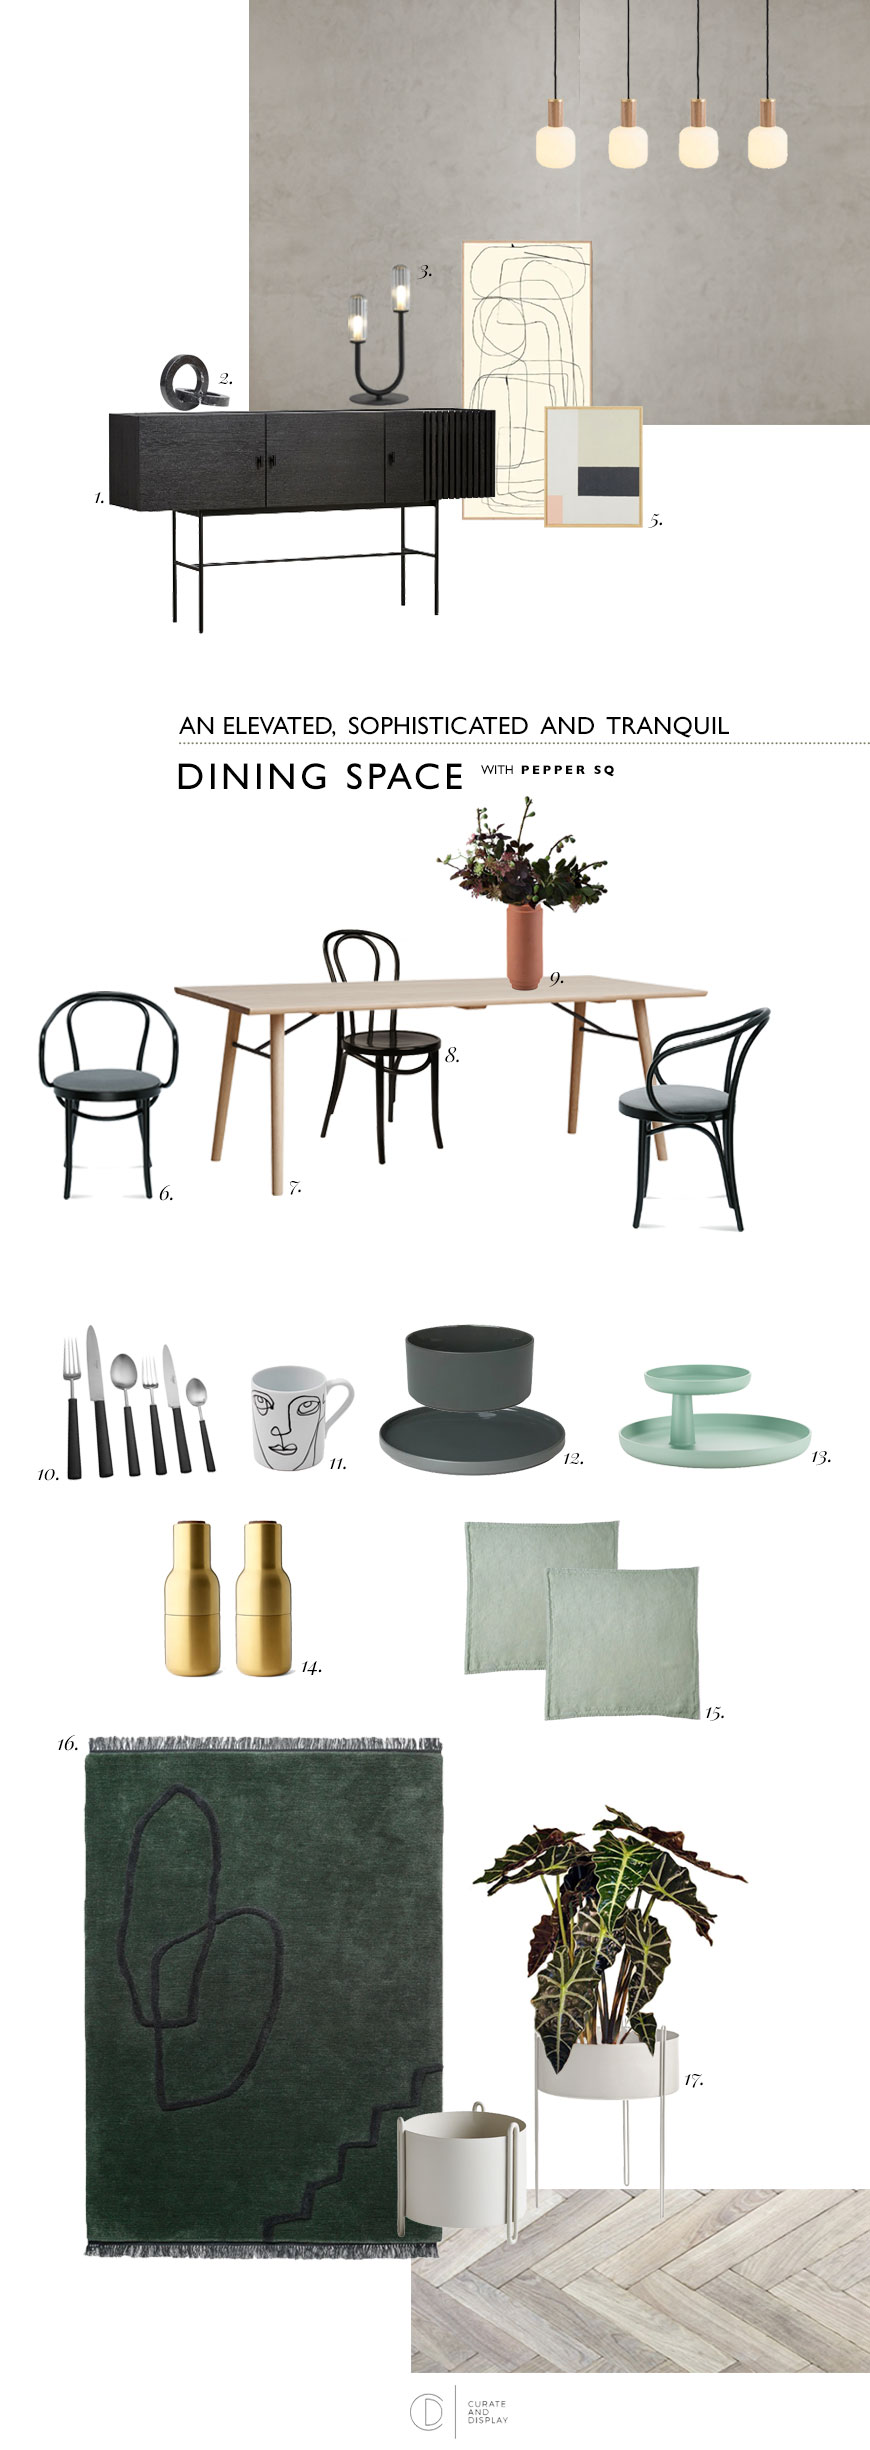 Pepper_Sq_Spacemaking_Dining_Room_Tranquil_Dawn_Green